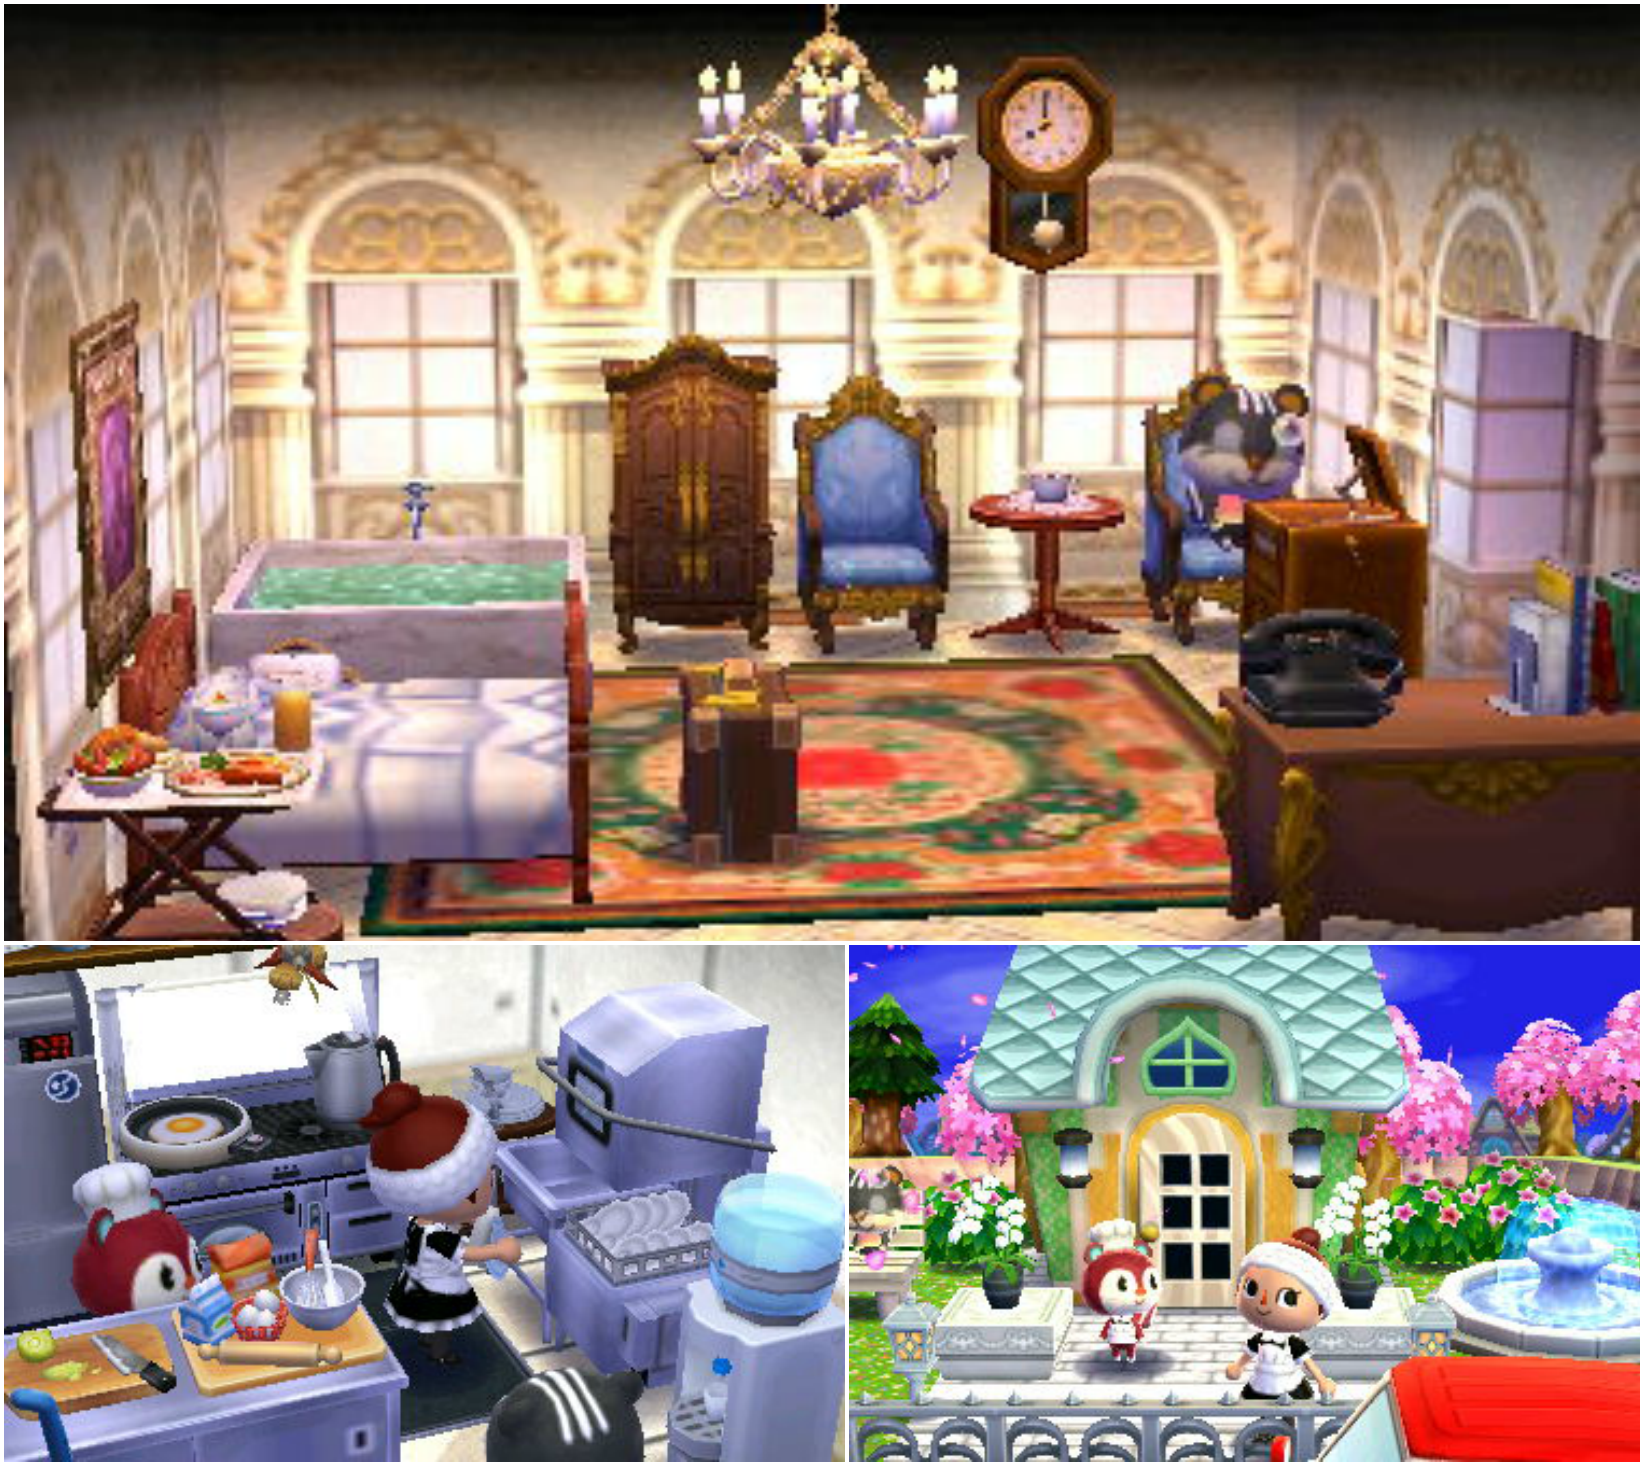 Animal Crossing Happy Home Designer Blaire A Classy Hotel Visit In Game 0804 7769 915